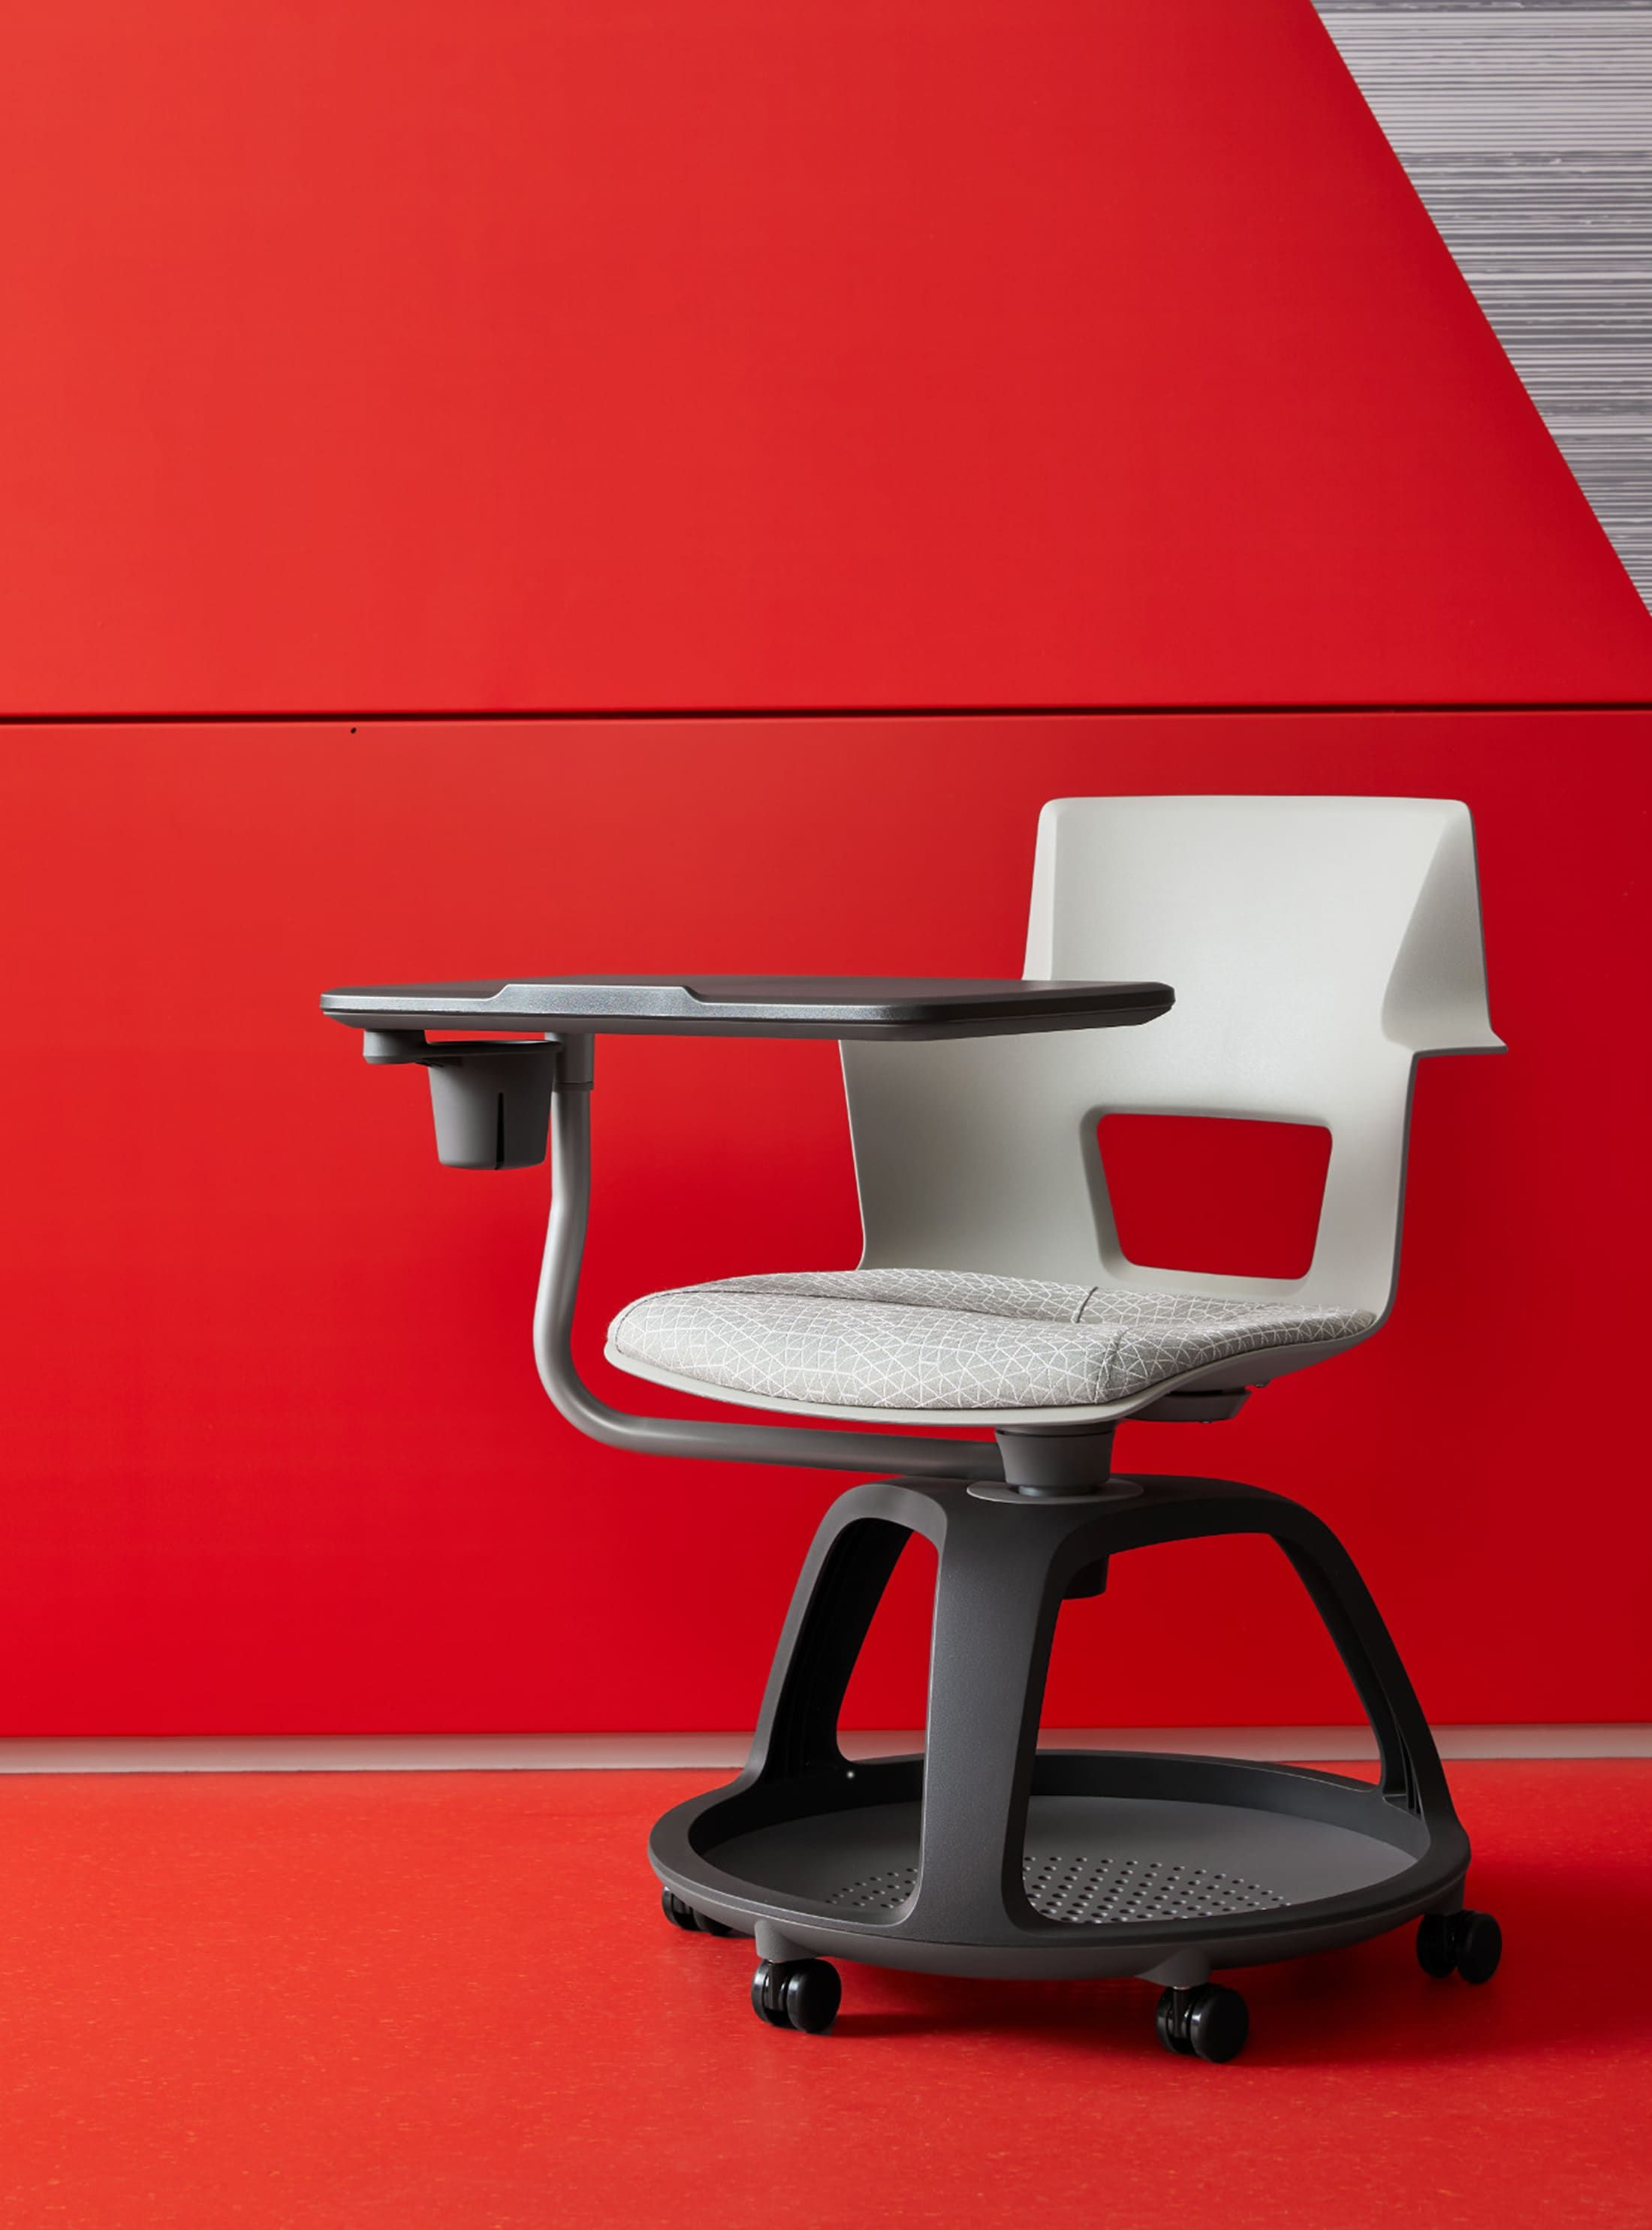 Shortcut Classroom Chair with Tripod Base in 2020